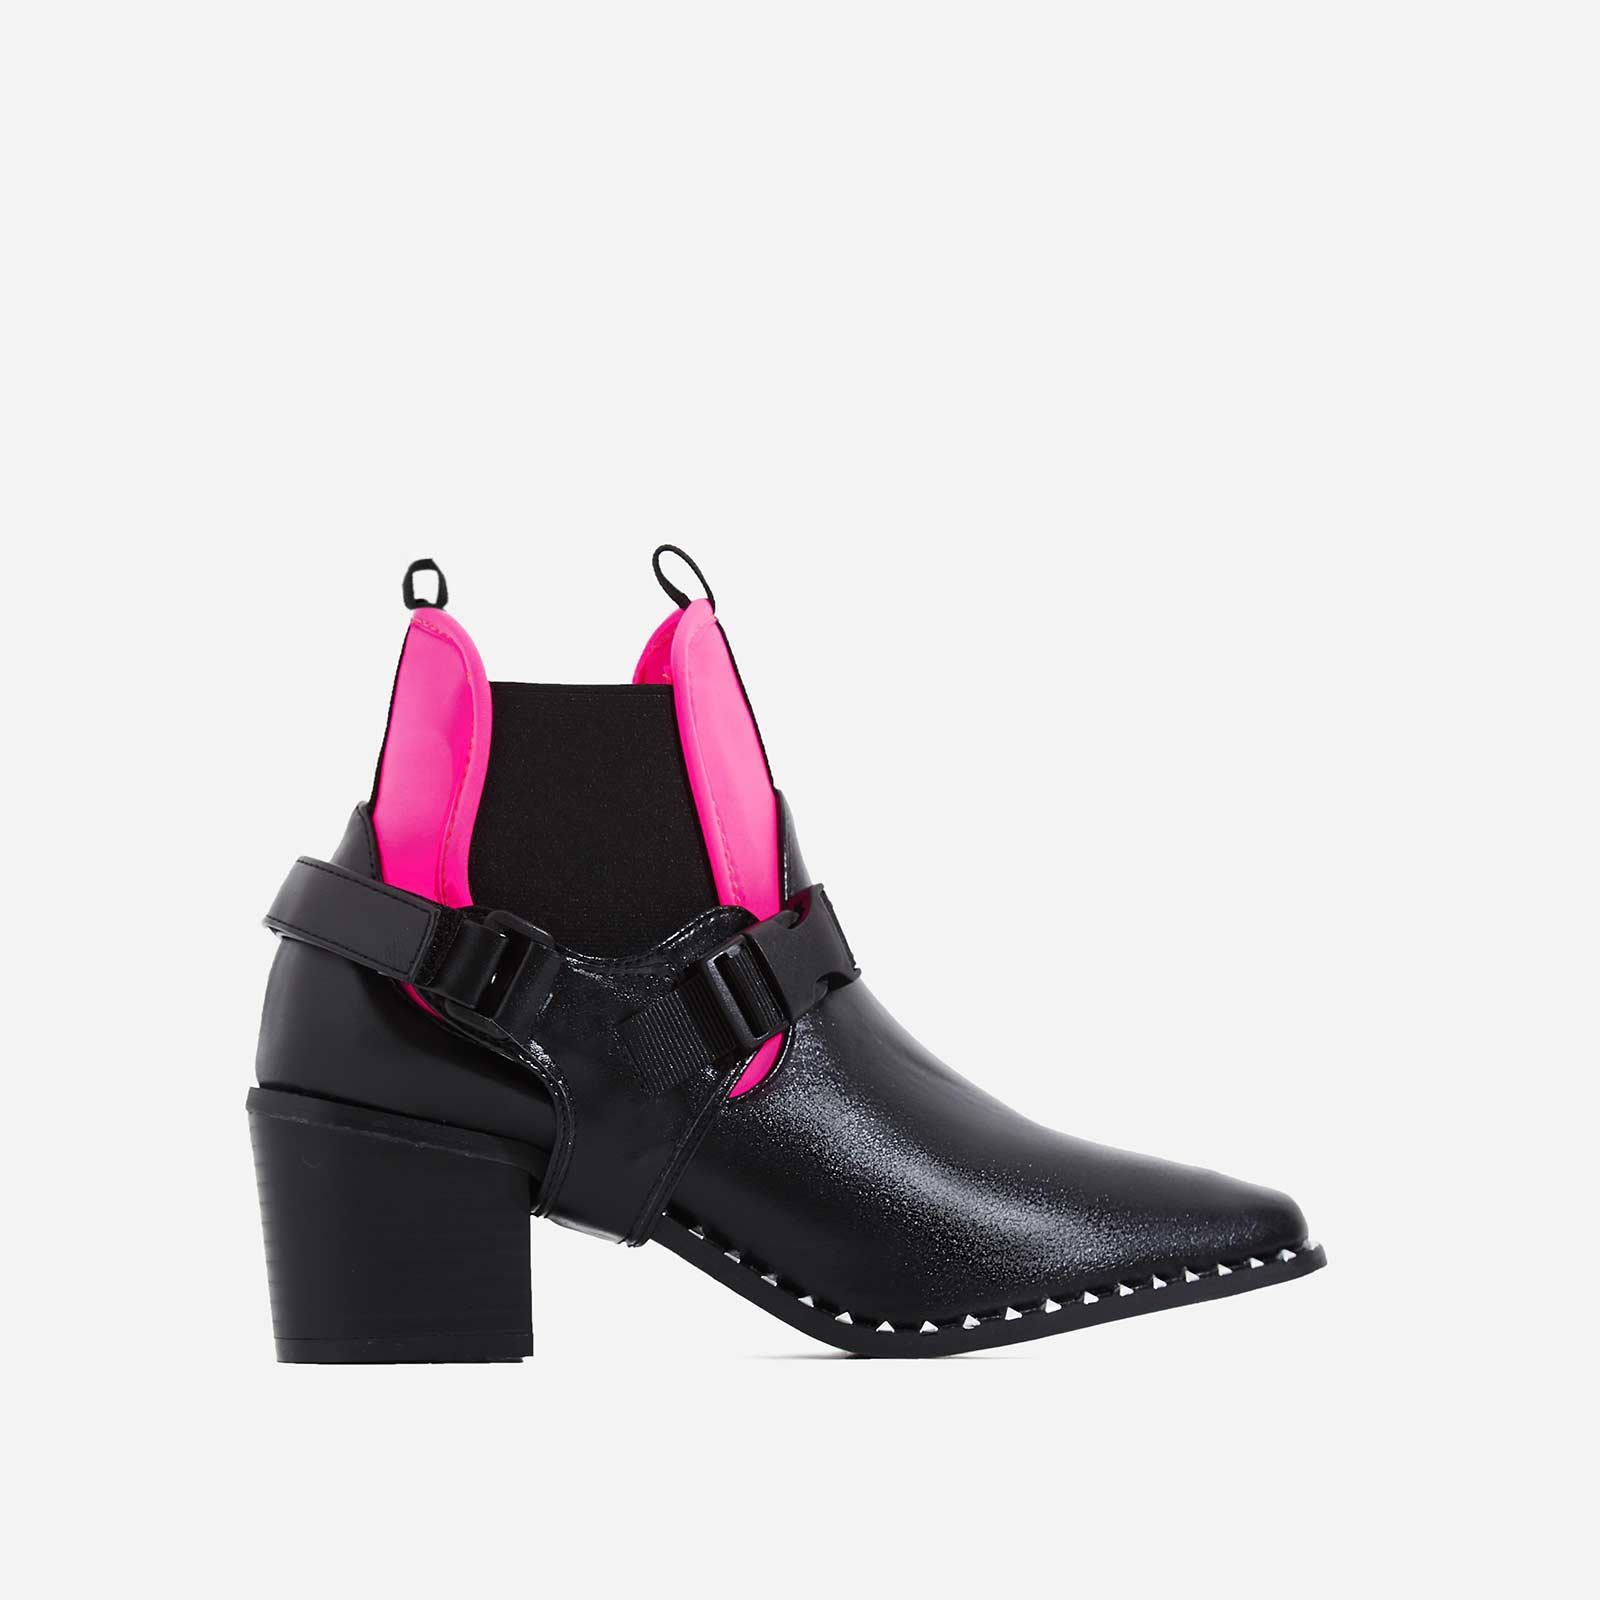 Hotshot Pink Lycra Trim Studded Ankle Biker Boot In Black Faux Leather